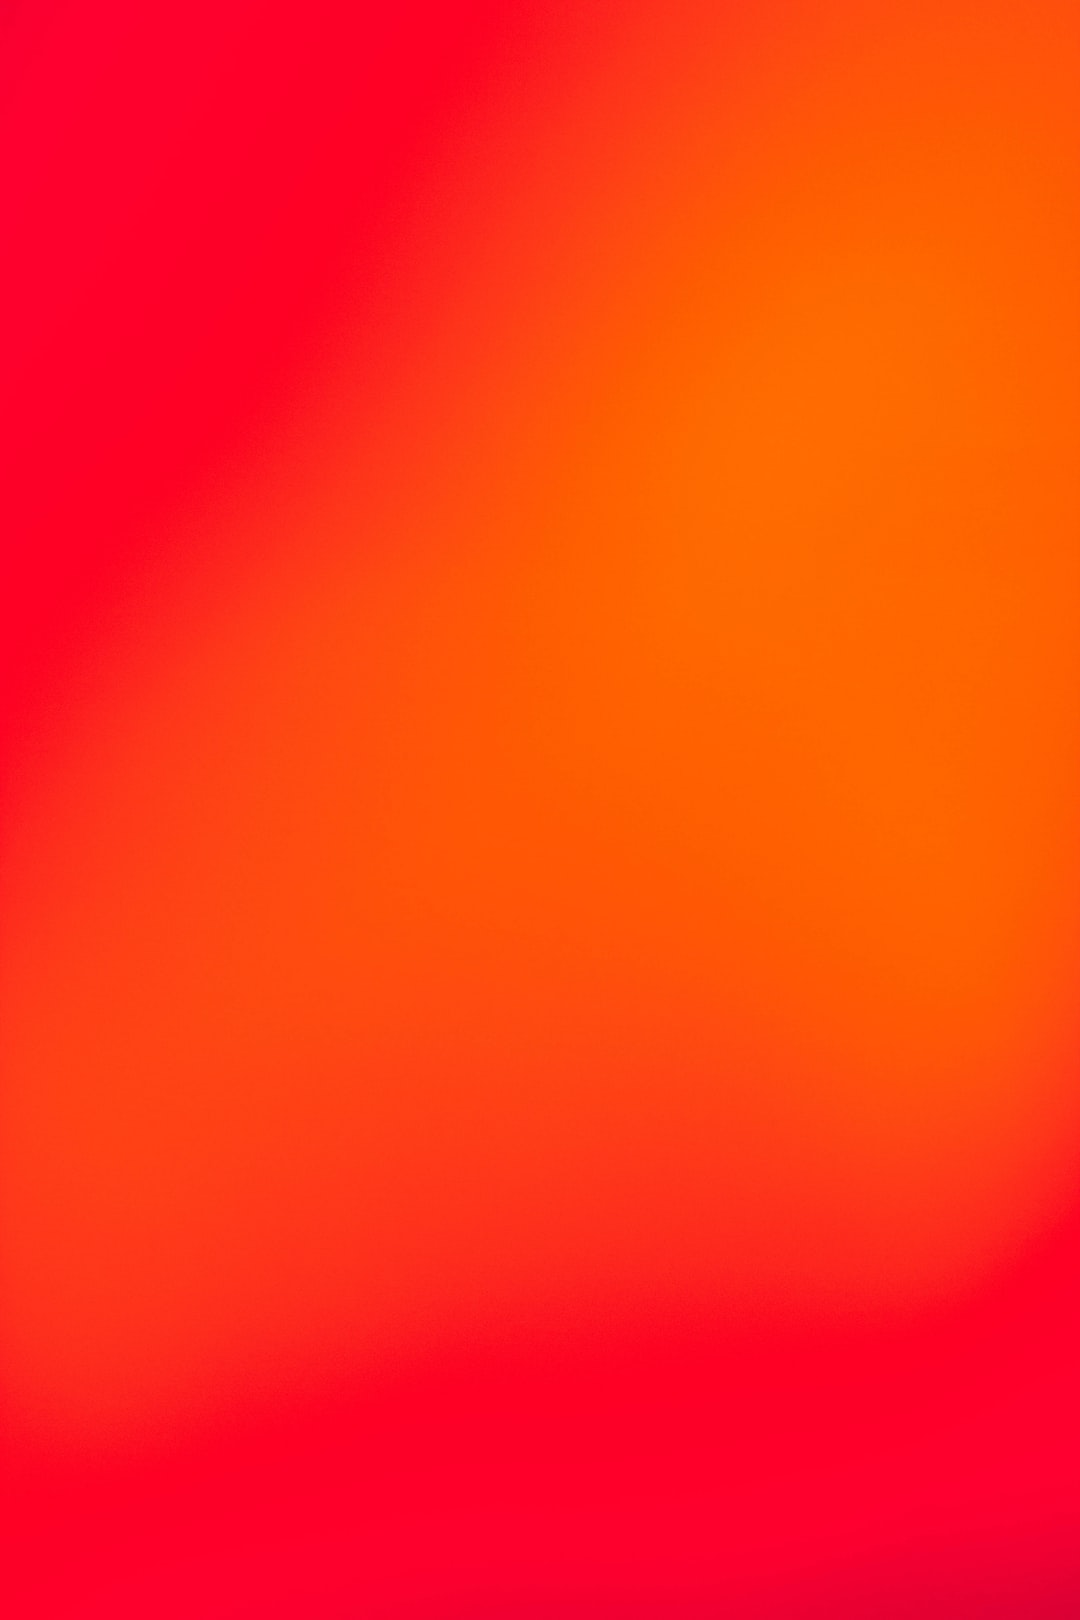 Red Wallpapers Free HD Download [20+ HQ]   Unsplash